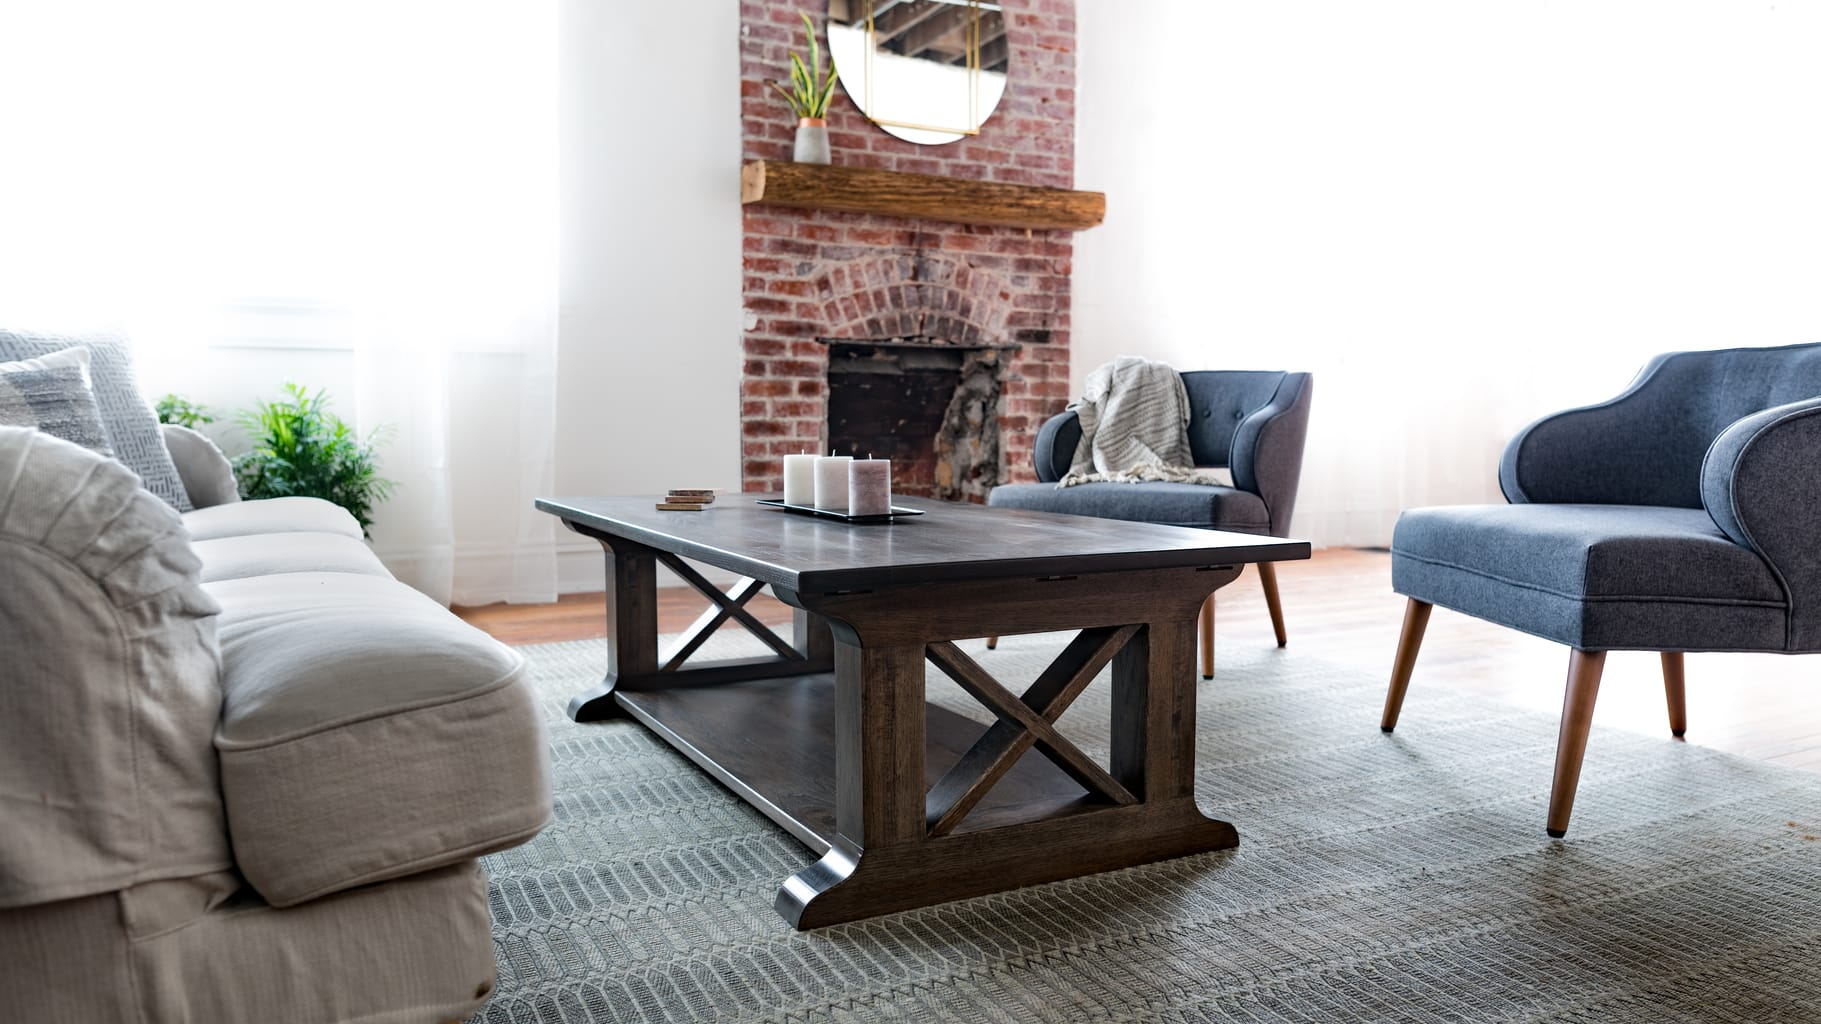 Unruh's Farmhouse Coffee Table for living room